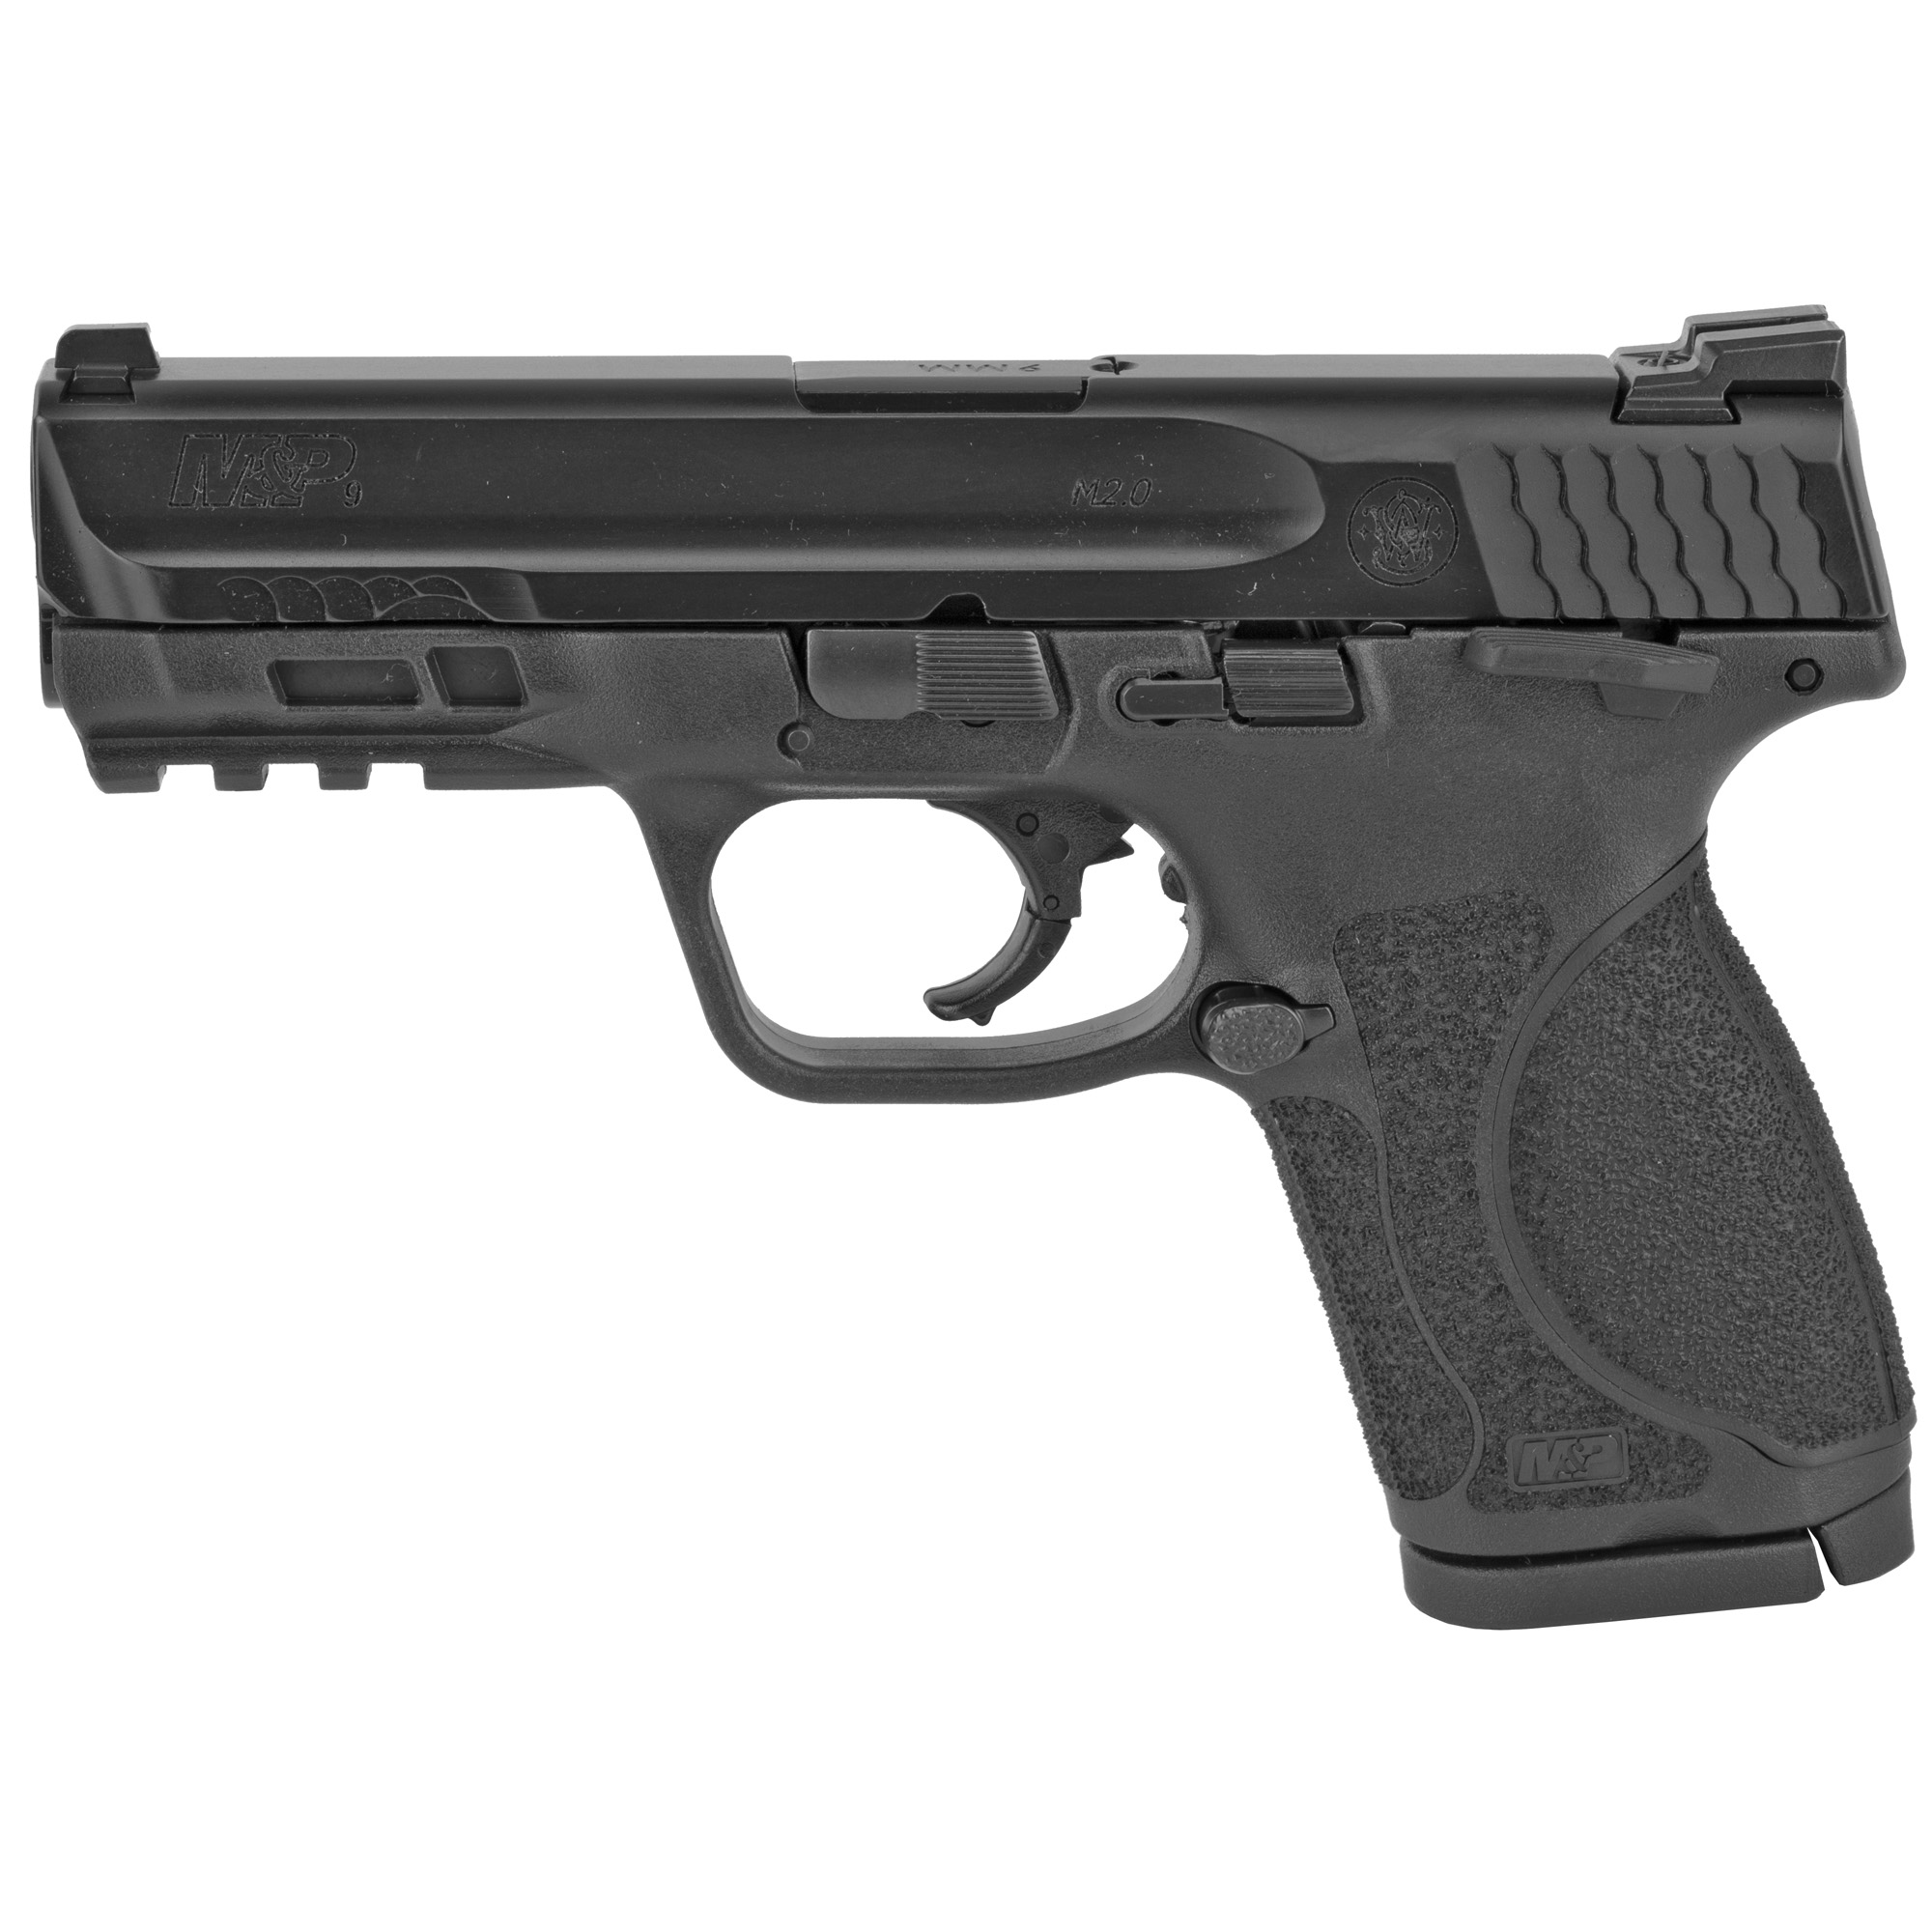 NEW Smith & Wesson M&P 9mm compact 2.0 just $535 out-the-door!!!